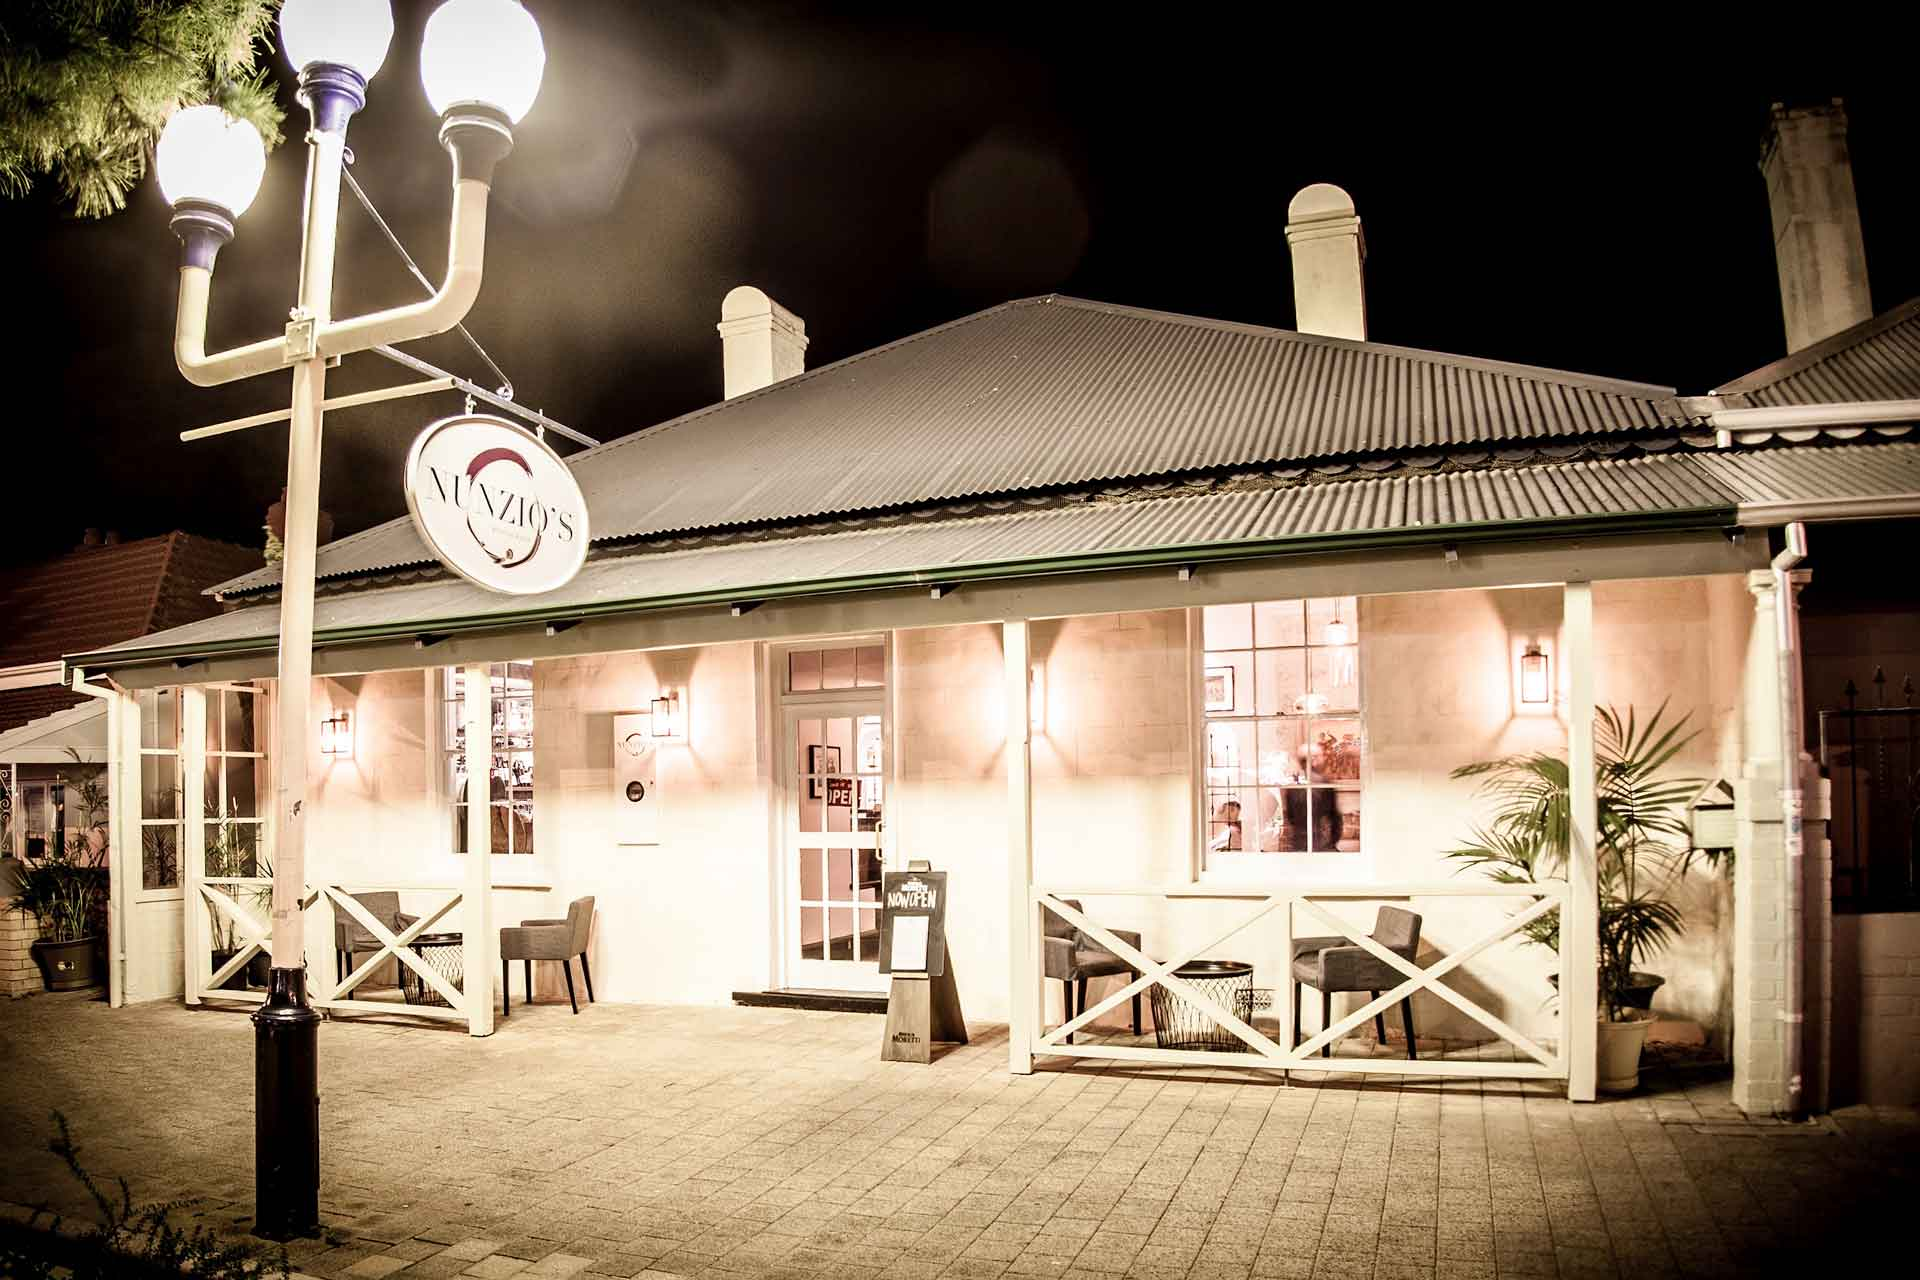 Perth's best Italian restaurants: where to carb up on these cold winter nights